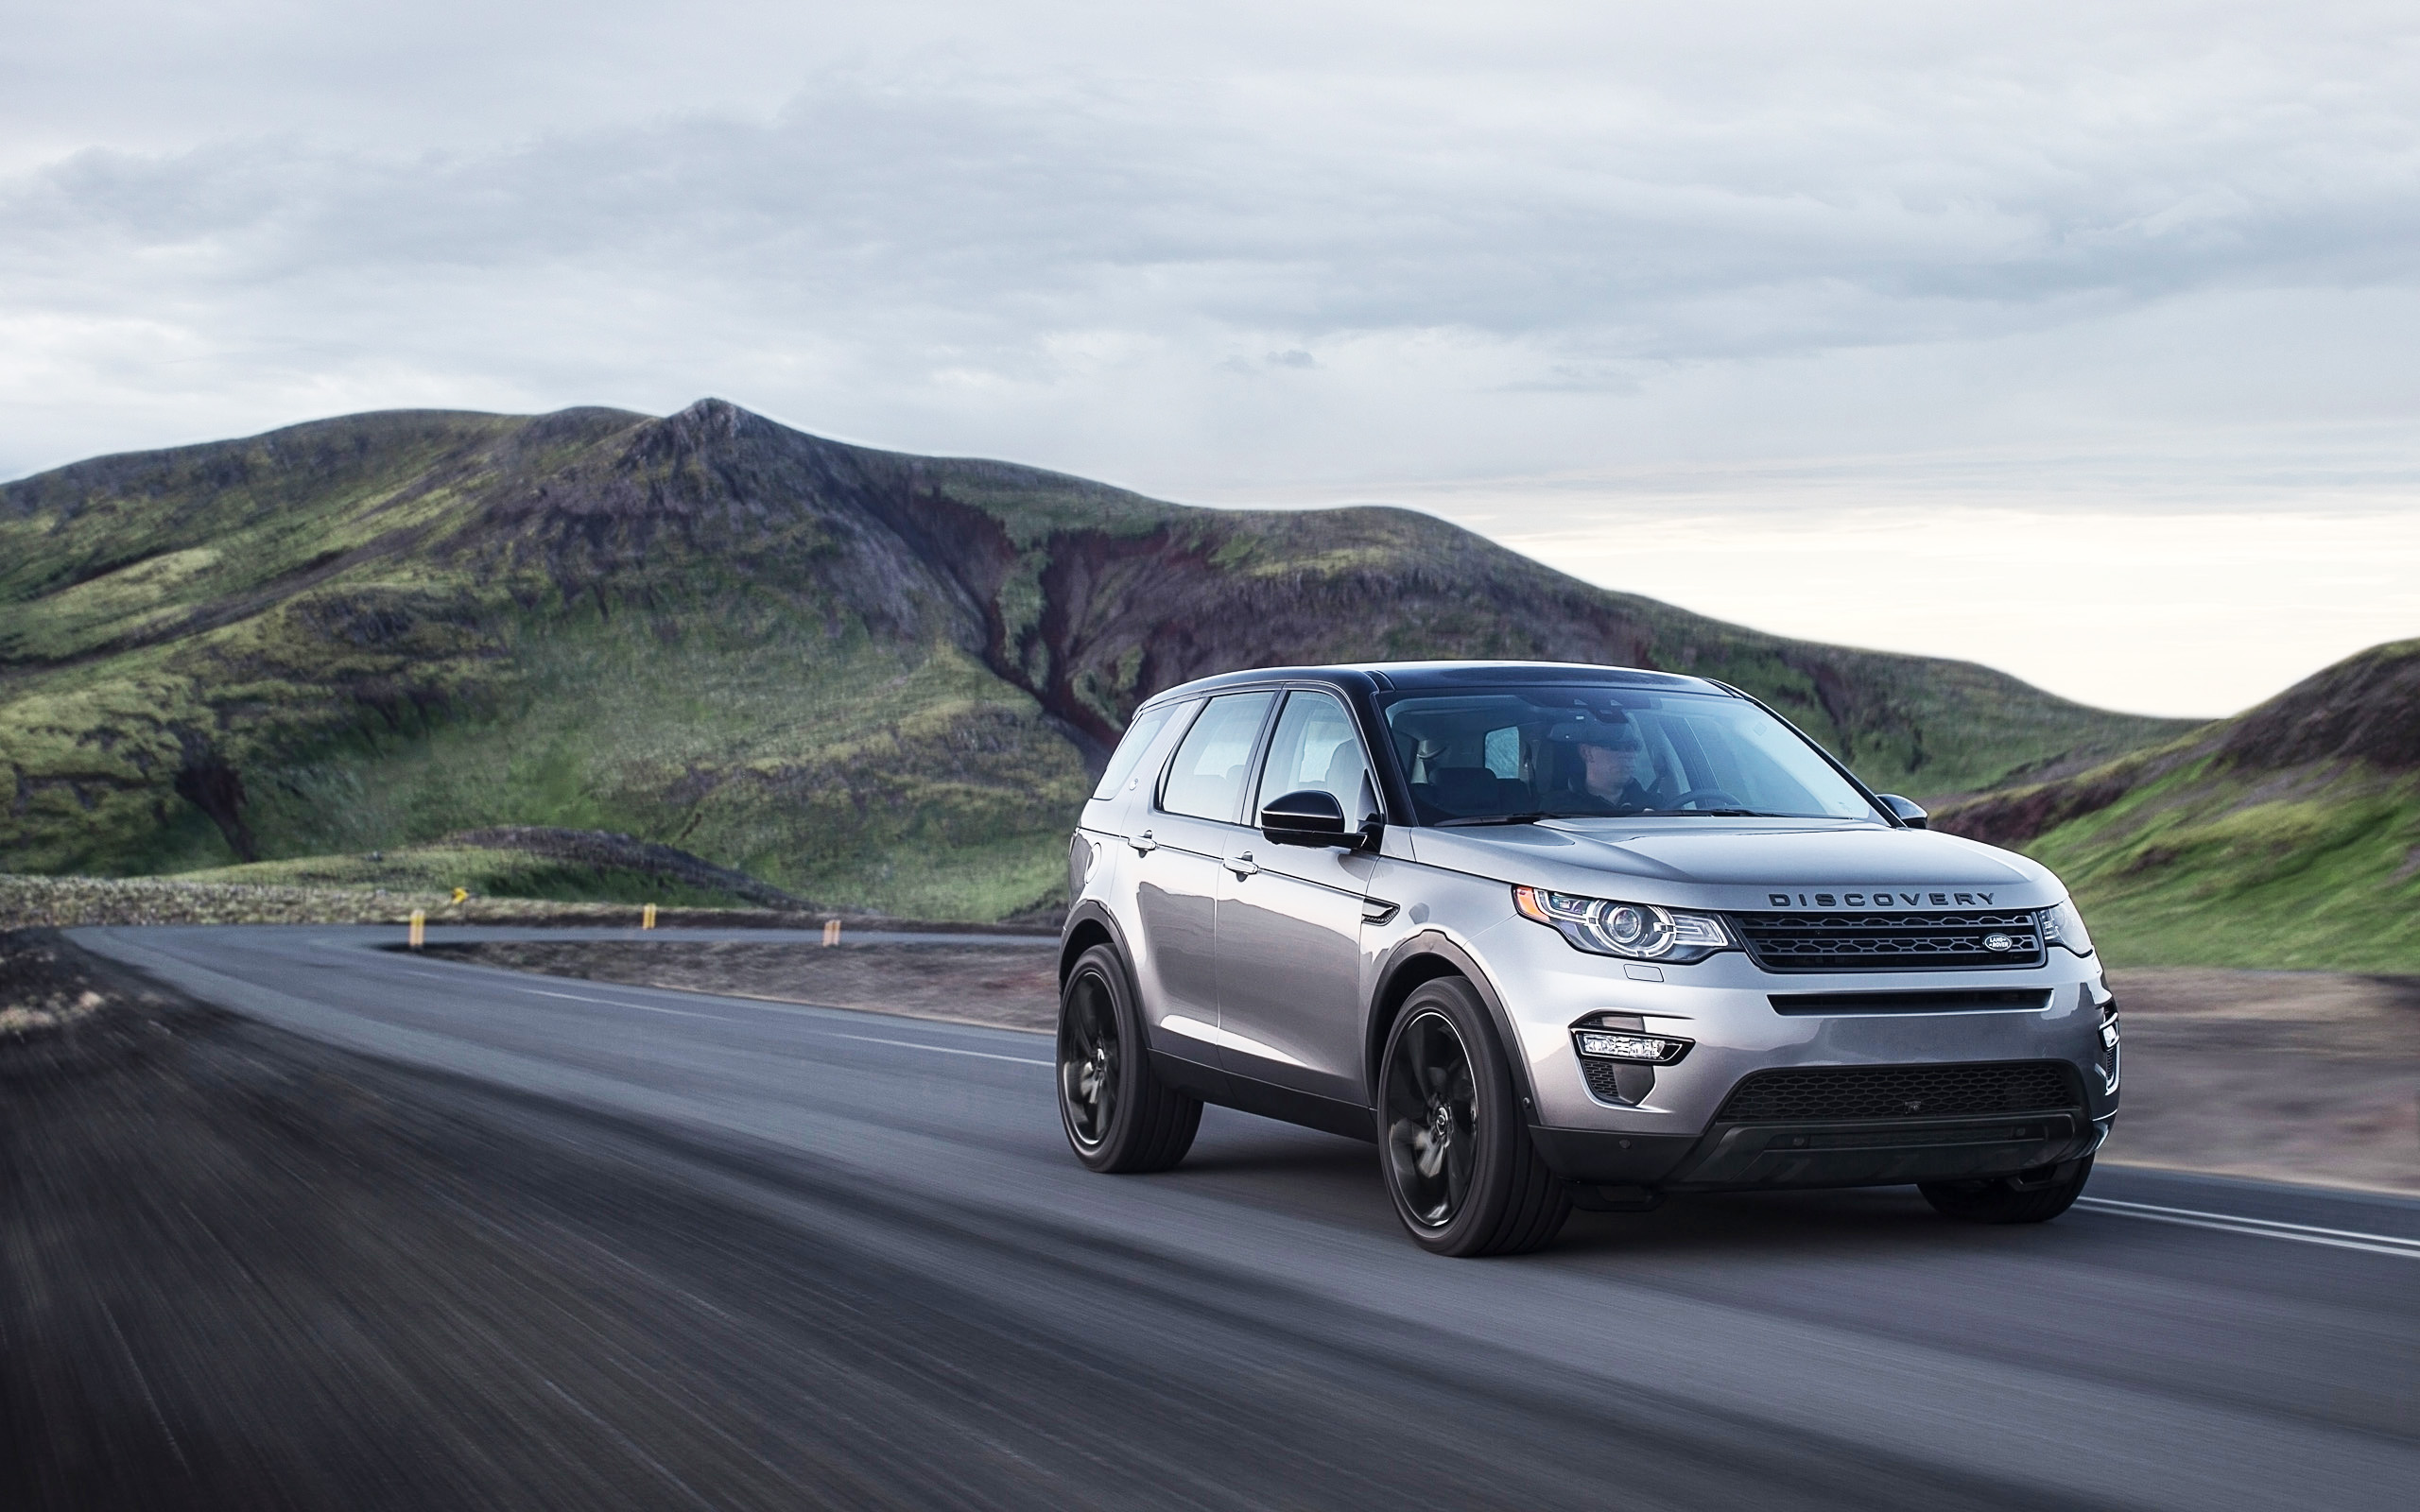 2015 land rover discovery sport wallpaper hd car wallpapers id 4765. Black Bedroom Furniture Sets. Home Design Ideas